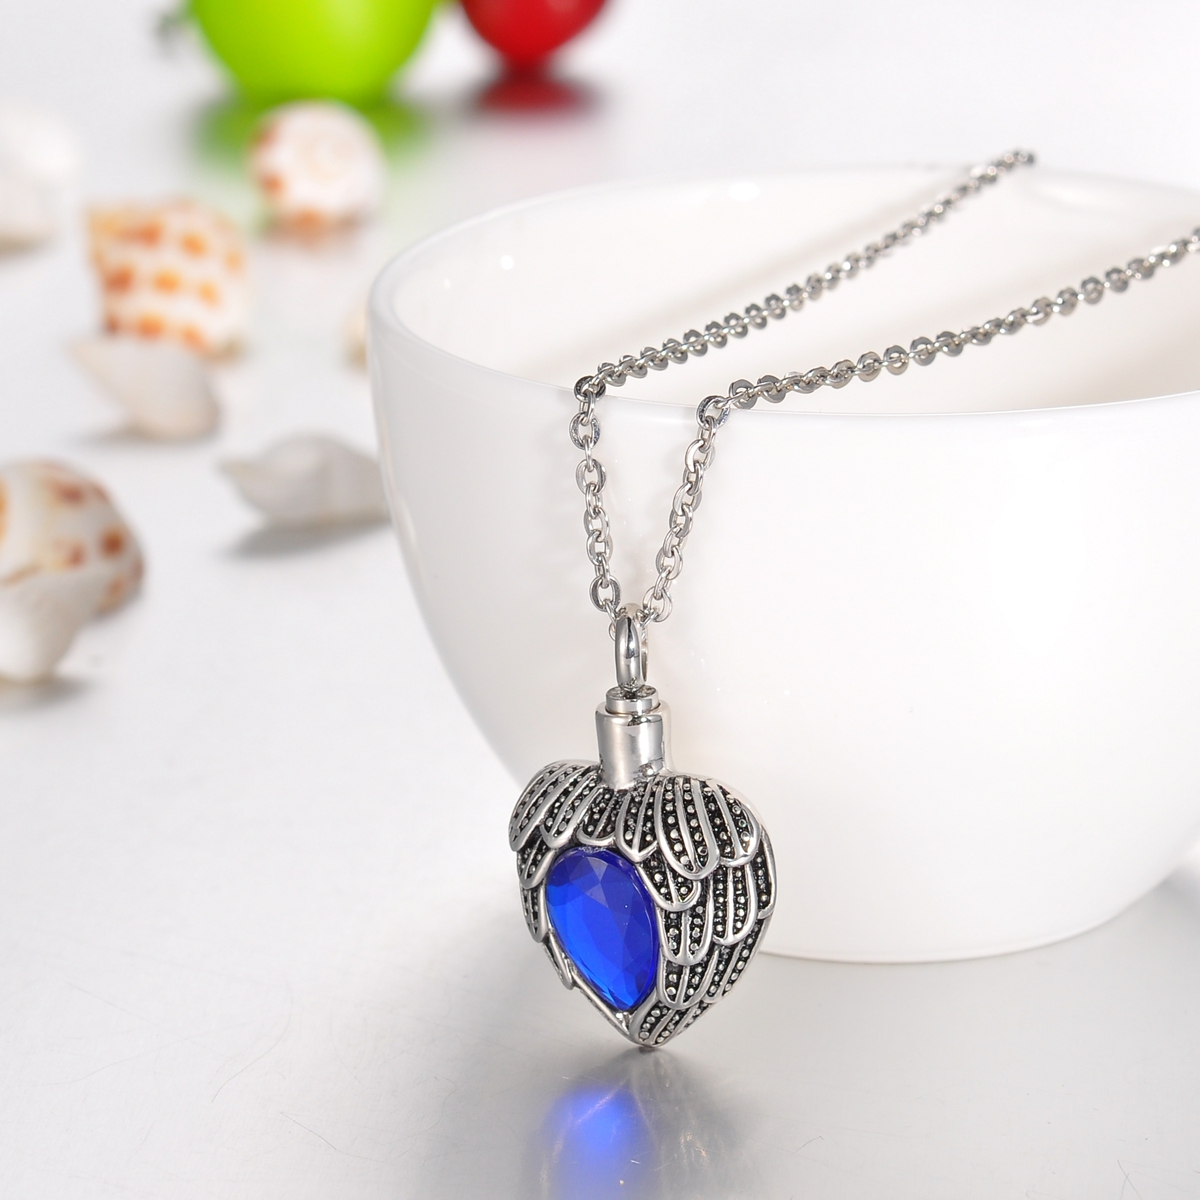 September Sapphire Heart Cremation Jewelry Keepsake Memorial Urn Necklace